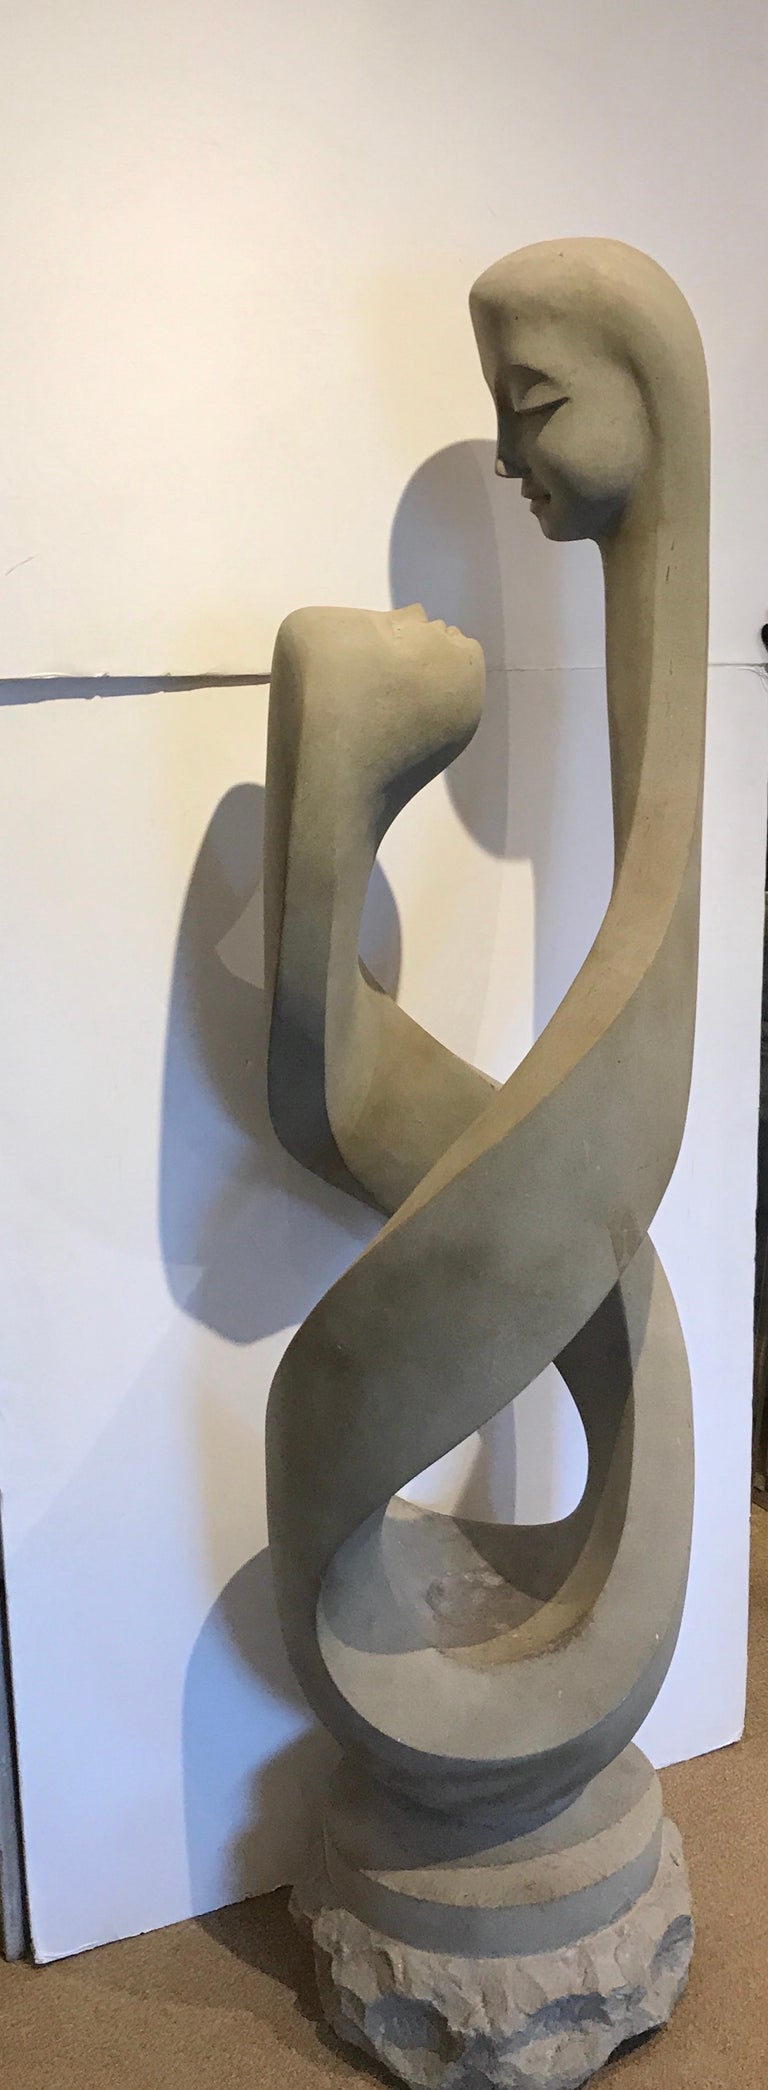 Italian Monumental Modern Carved Limestone Spiral Sculpture For Sale